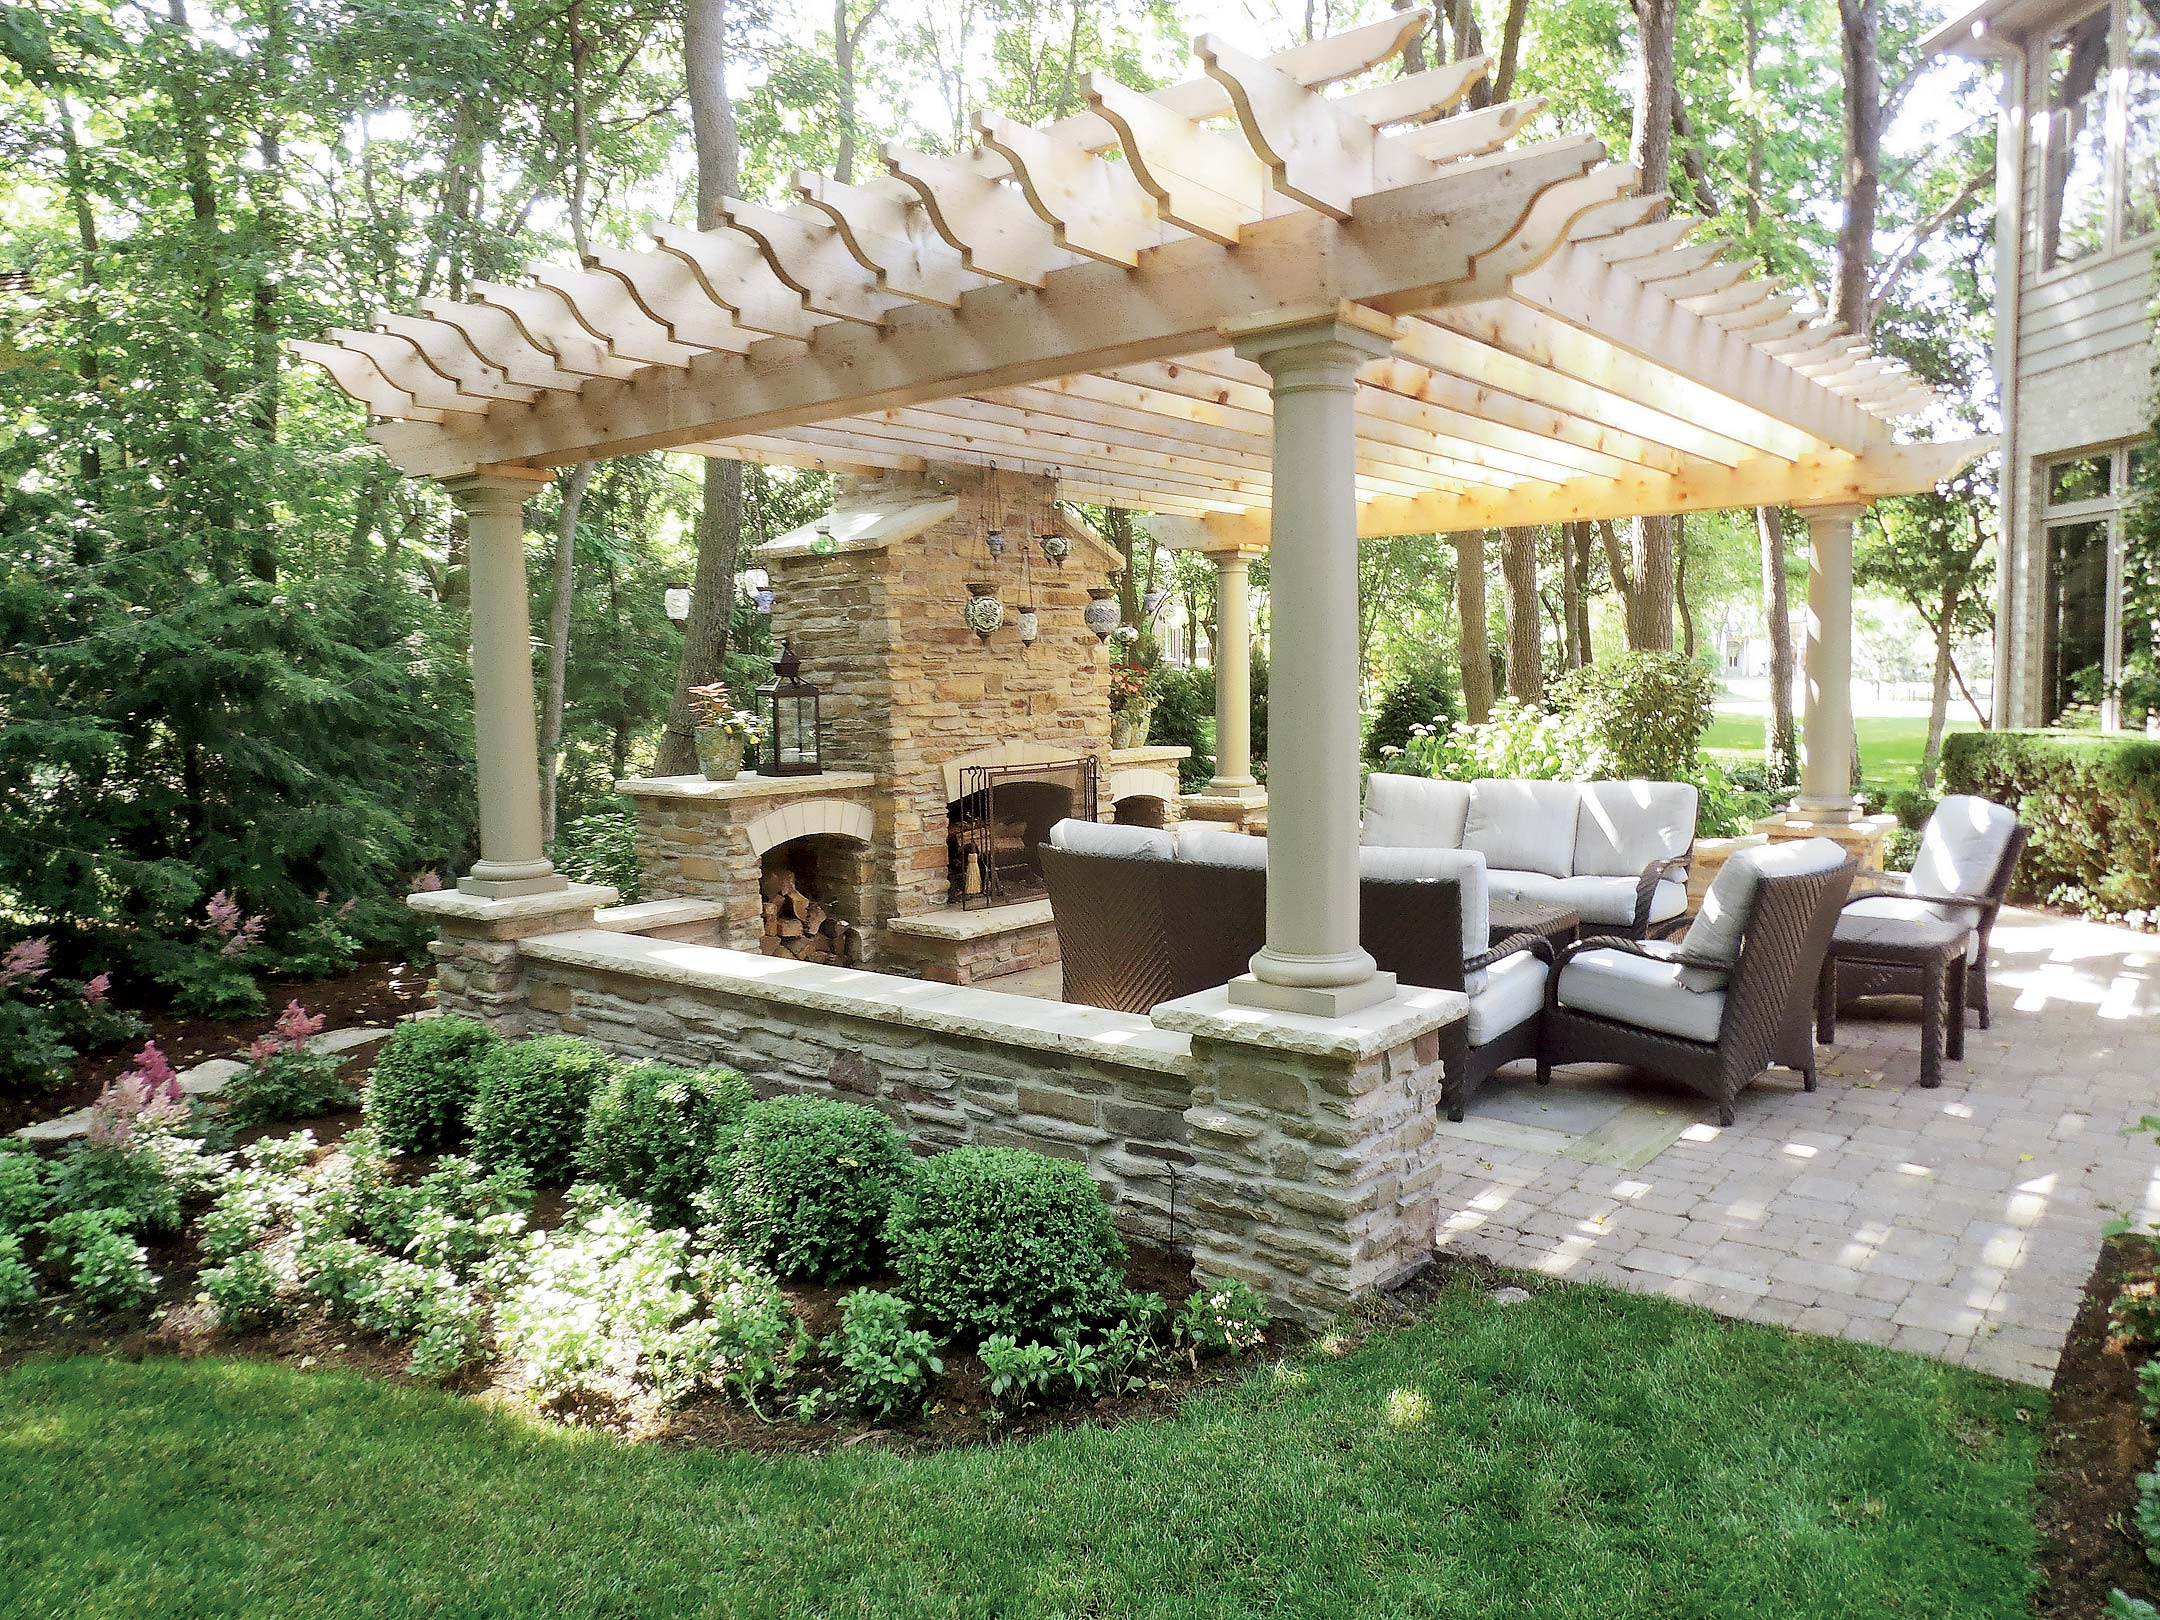 Backyard structures for entertaining for Outdoor garden design